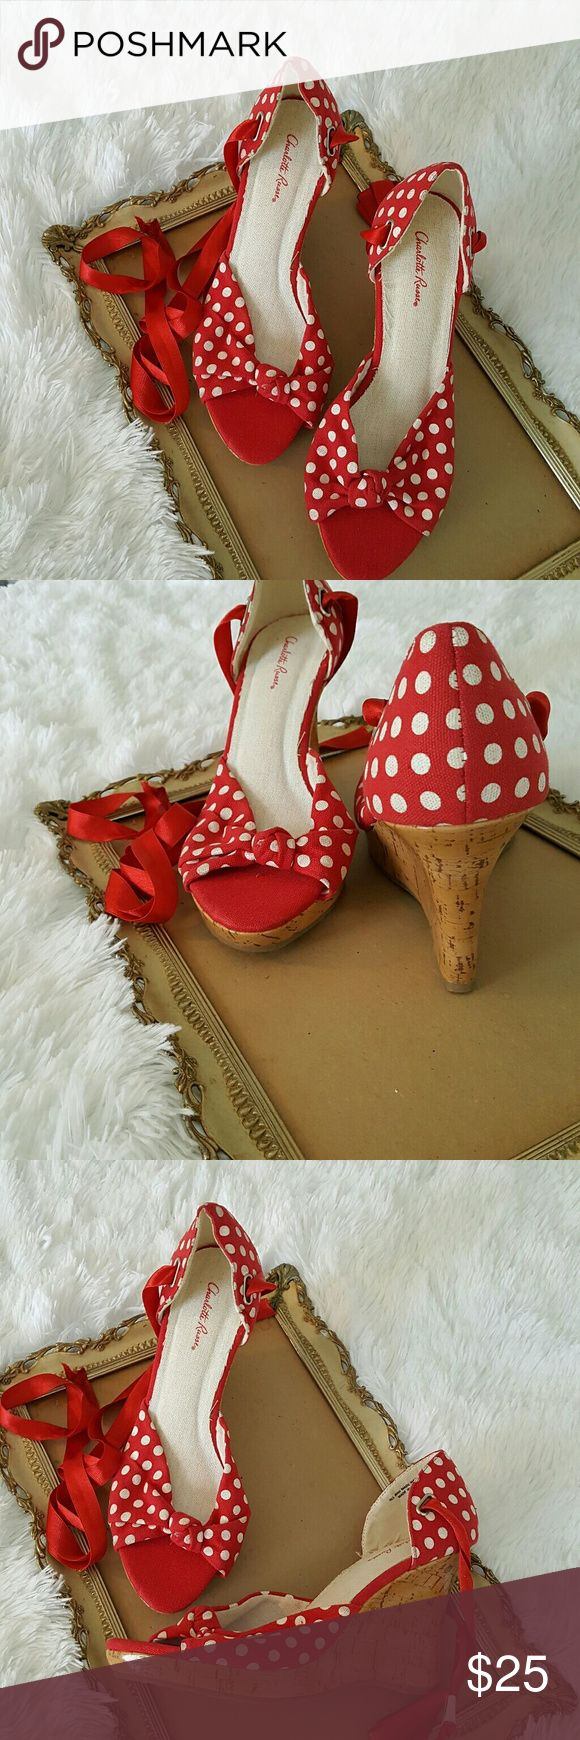 Red and White Peep Toe Espadrilles Charlotte Rouse Red and White Polka Dot Peep Toe Espadrilles with red satin laces and 4 inch glossy faux cork wedge. Charlotte Russe Shoes Espadrilles